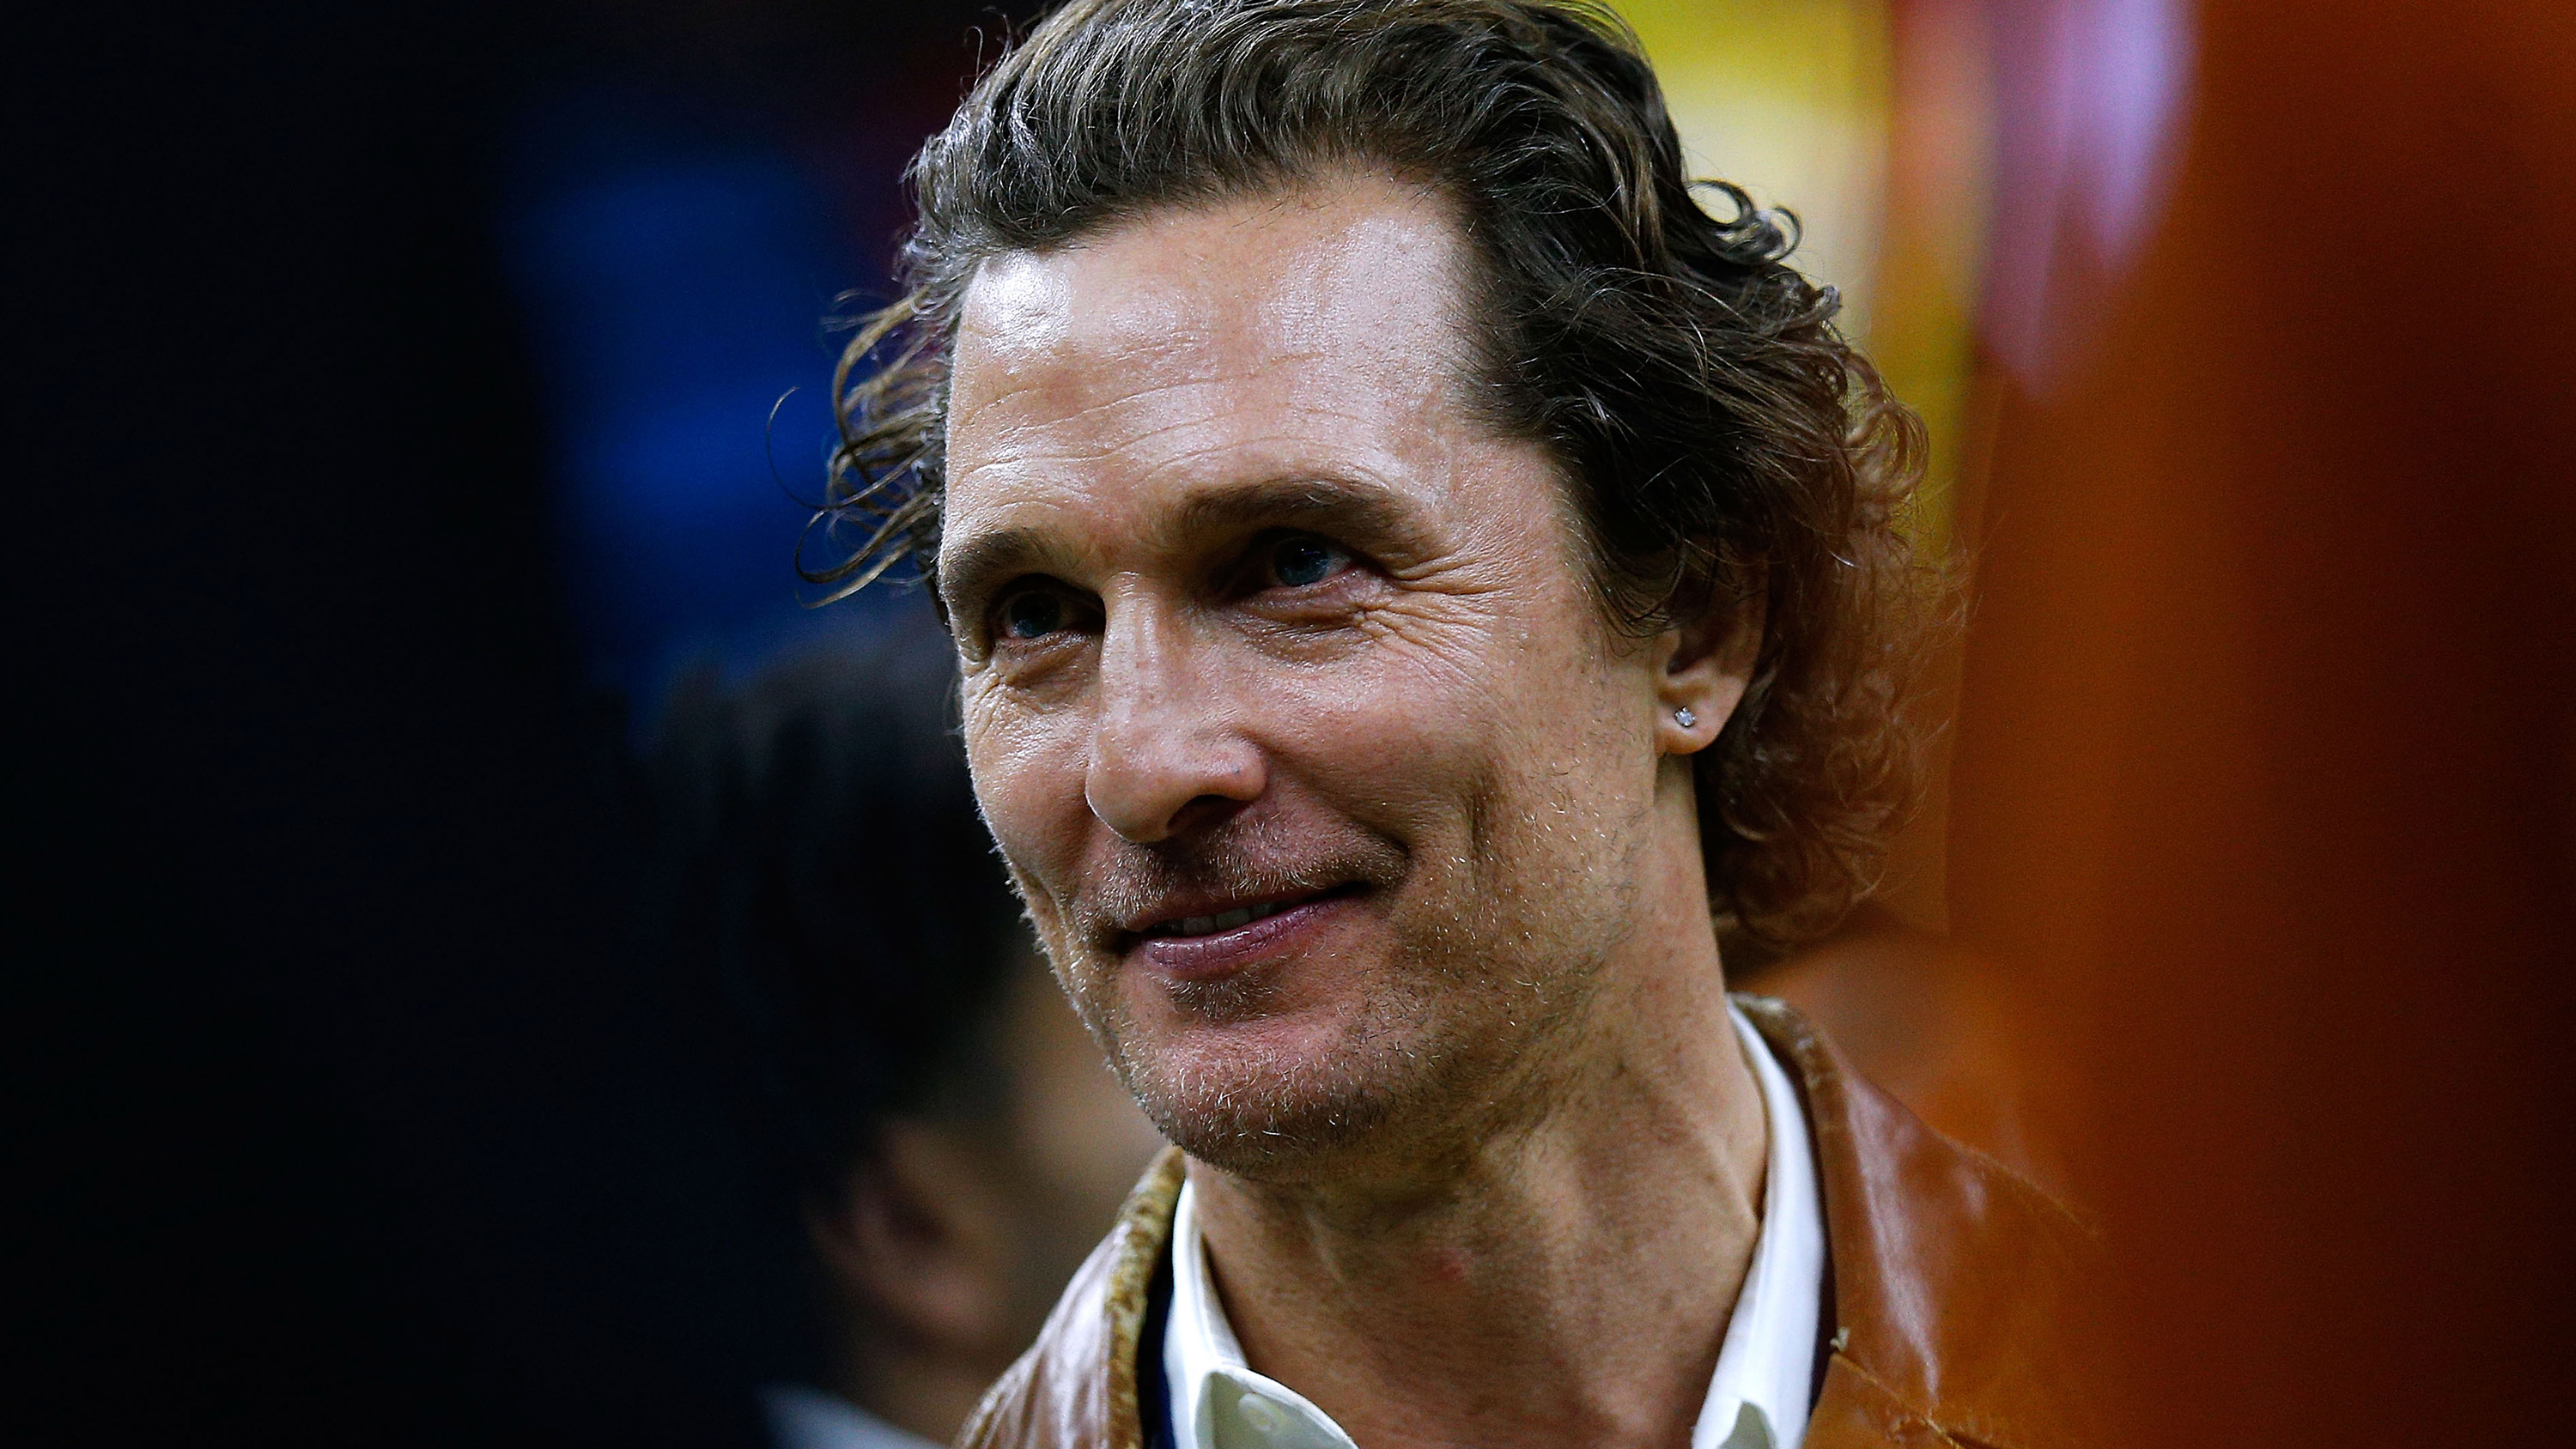 Matthew McConaughey has some lessons on fatherhood